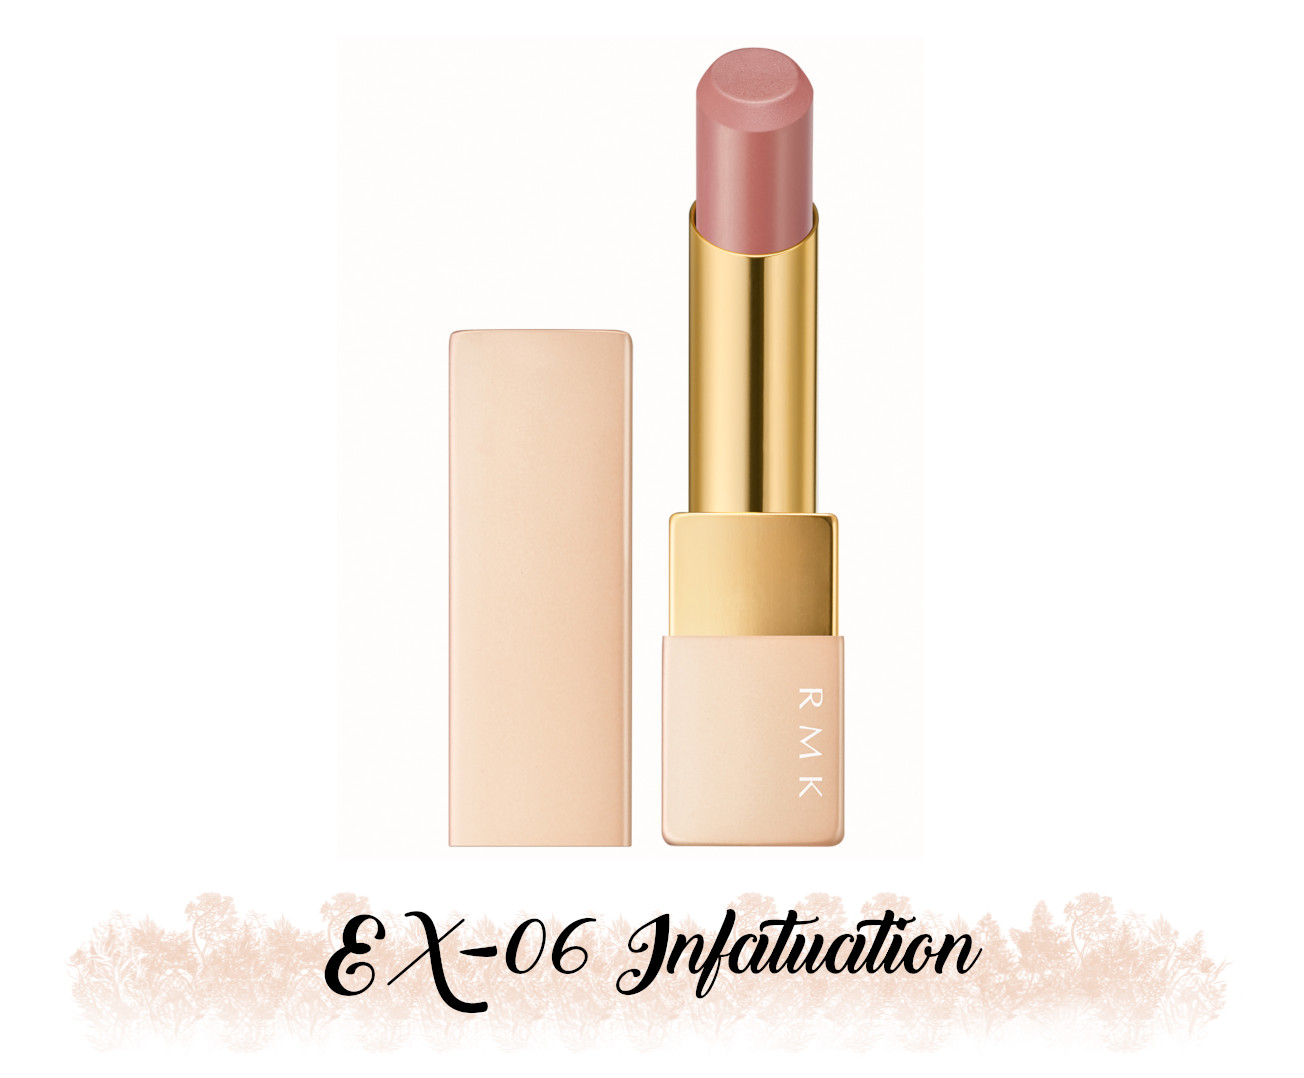 RMK Fall 2021 Collection Rosewood Daydream Lipstick Comfort Airy Shine EX-06 Infatuation